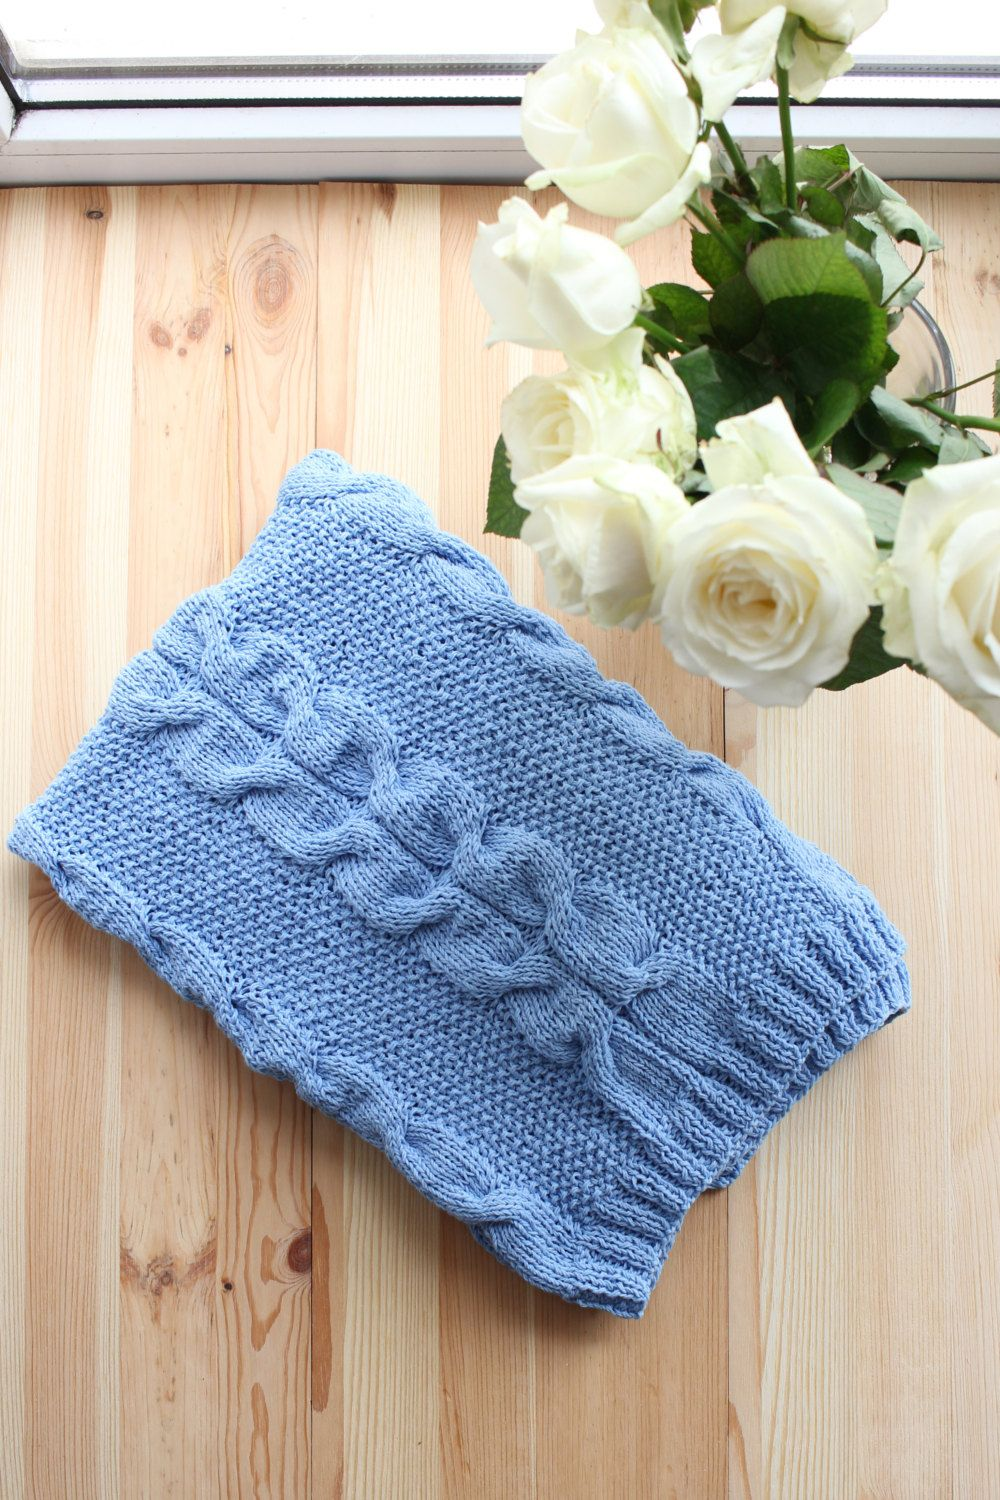 Baby boy blanket knit baby blanket cable knit blanket blue throw baby boy blanket knit baby blanket cable knit blanket blue throw blanket car seat blanket blanket bankloansurffo Gallery